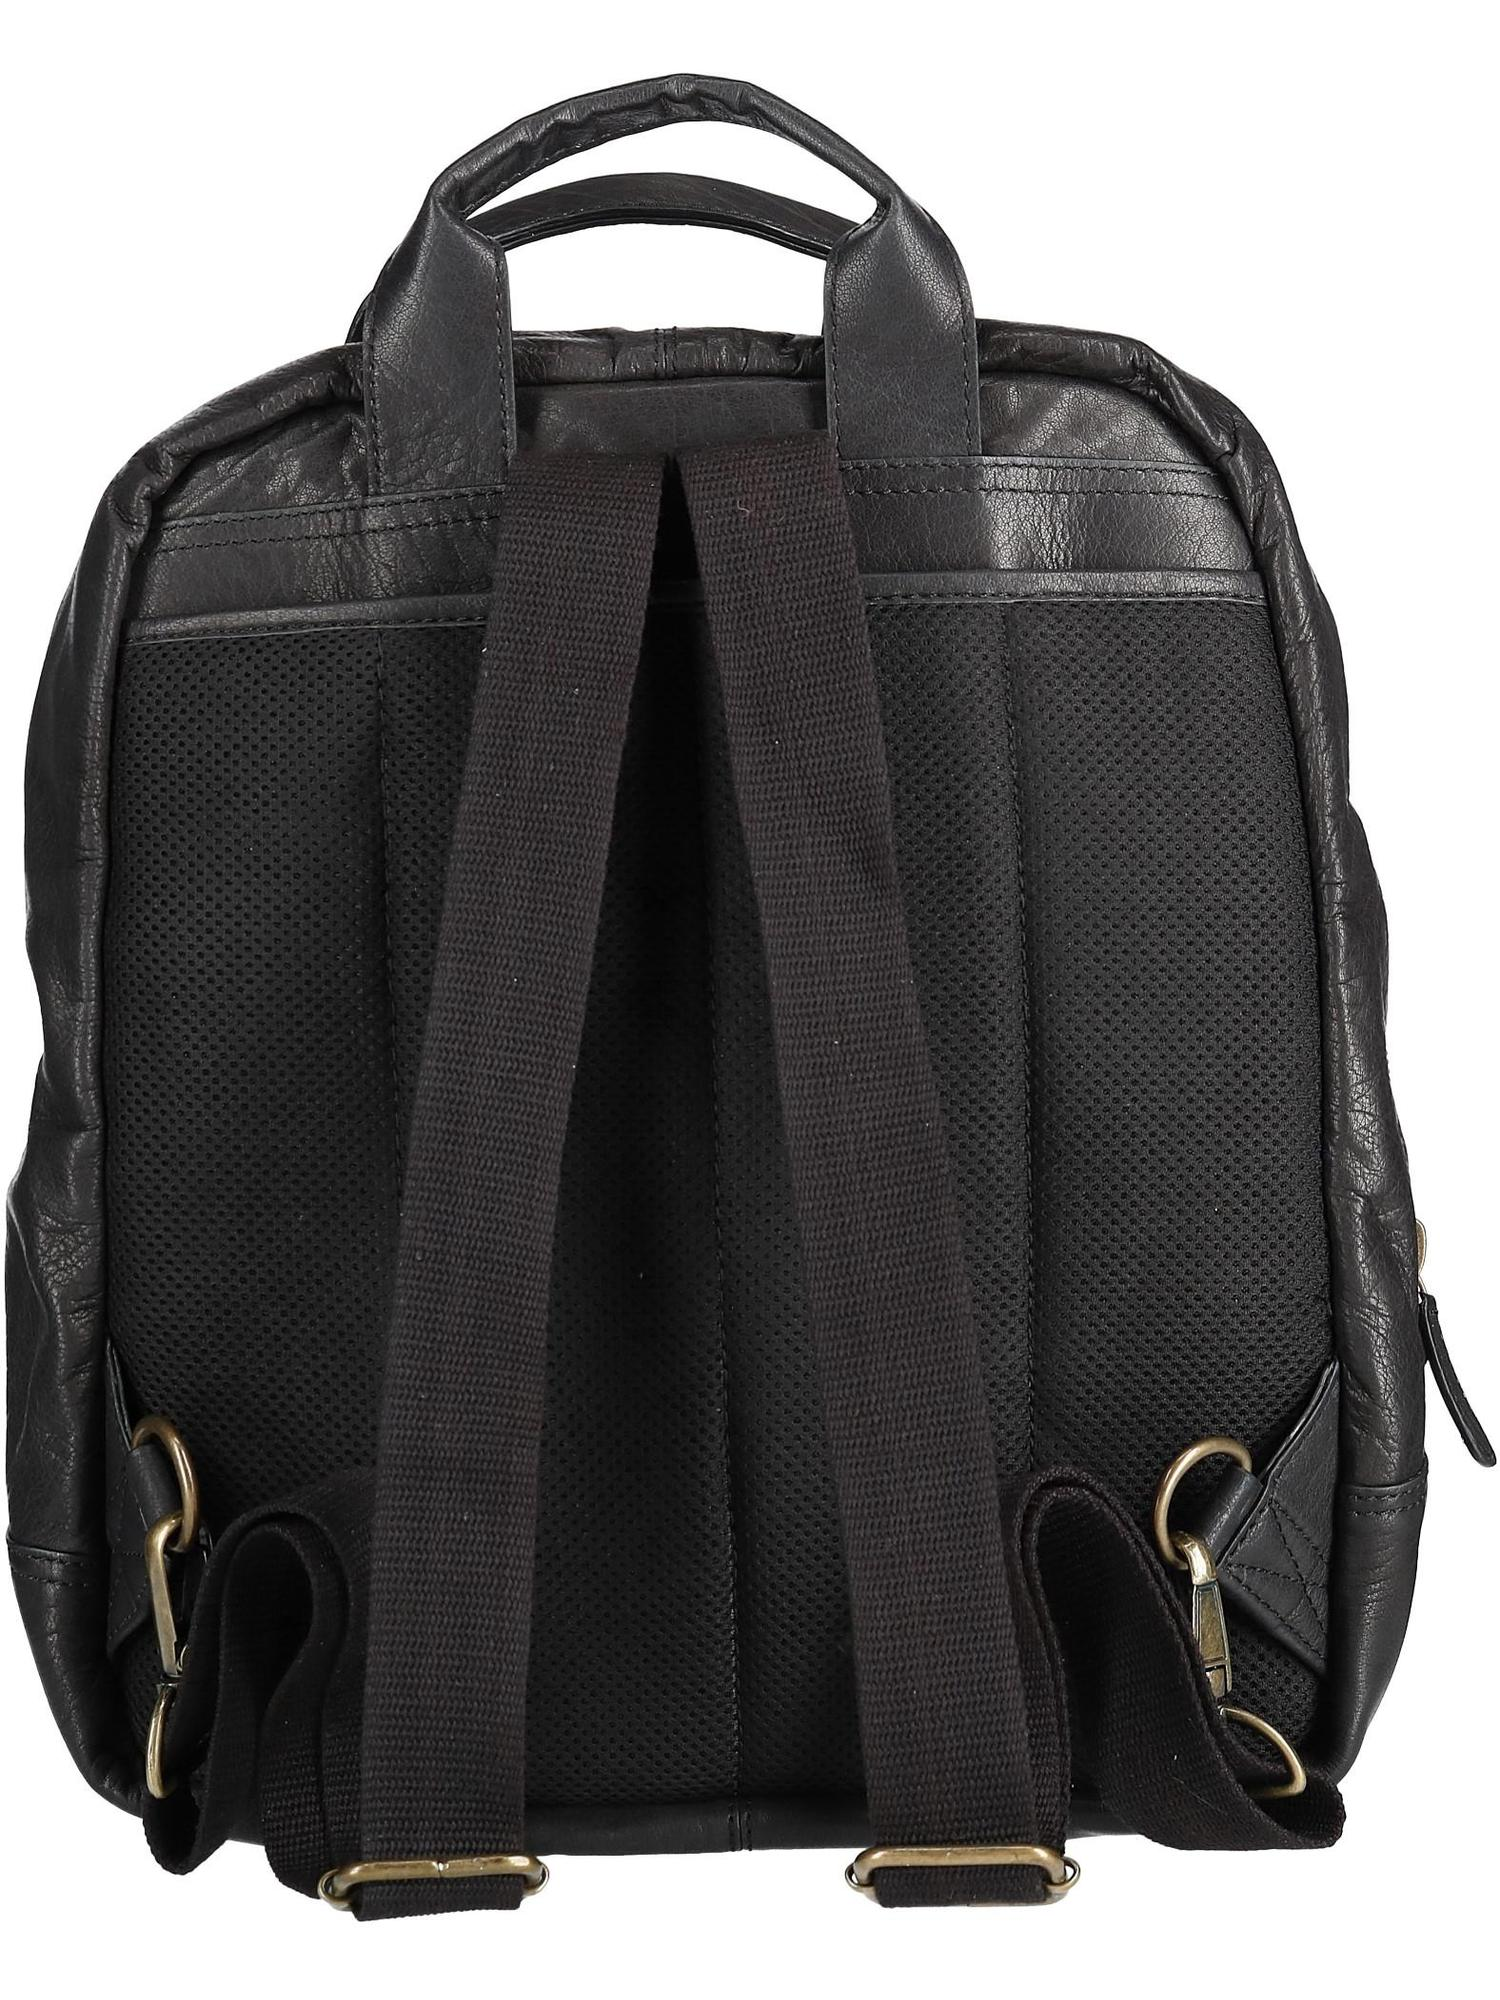 3e80b0453b15 Size one size Men's Leather Top Zip Backpack with Laptop Sleeve, Black